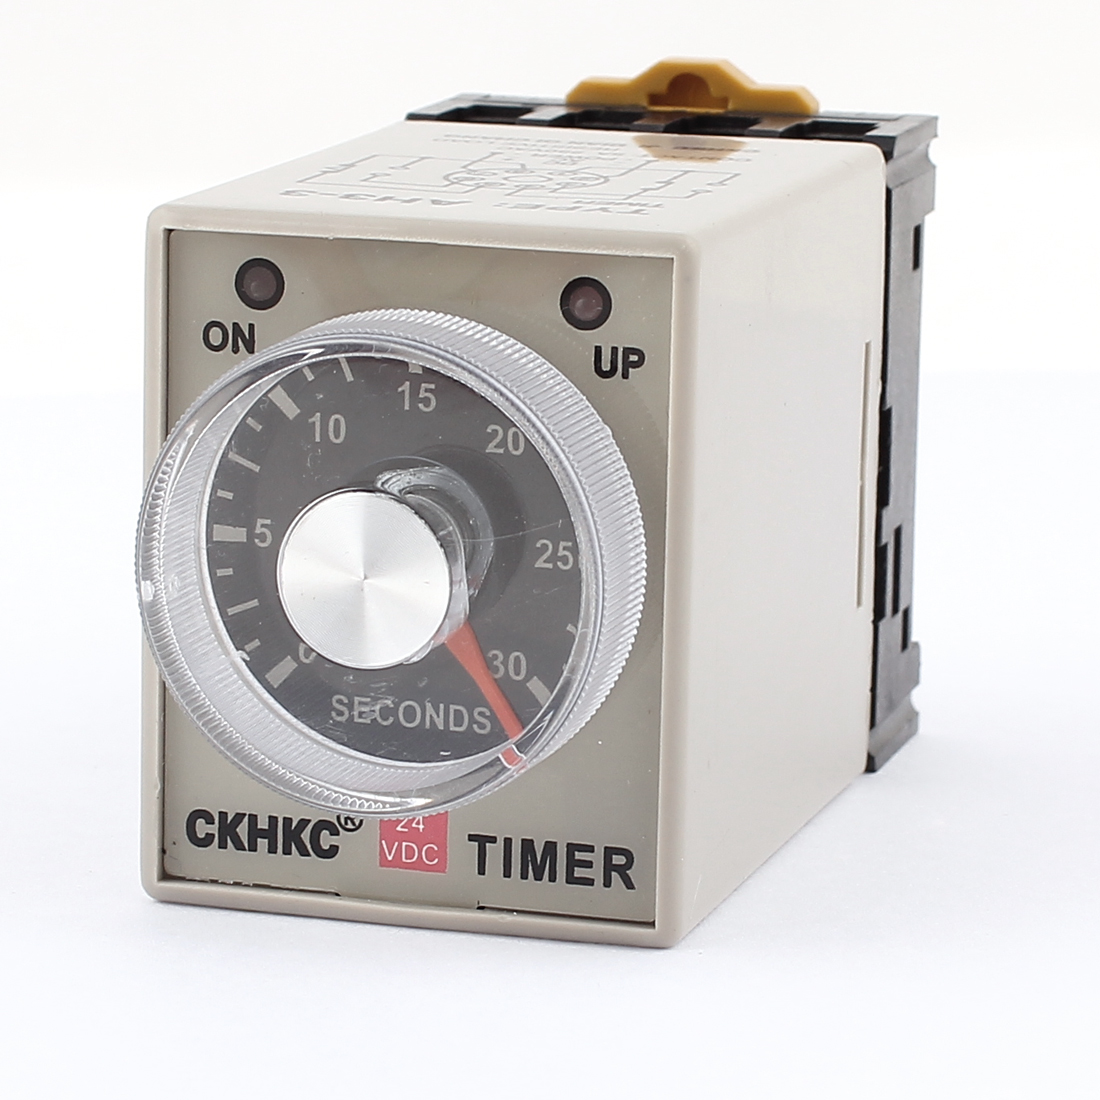 DC 24V Delay Time DPDT 8 Pin 0-30 Seconds Solid-State Timer Relay